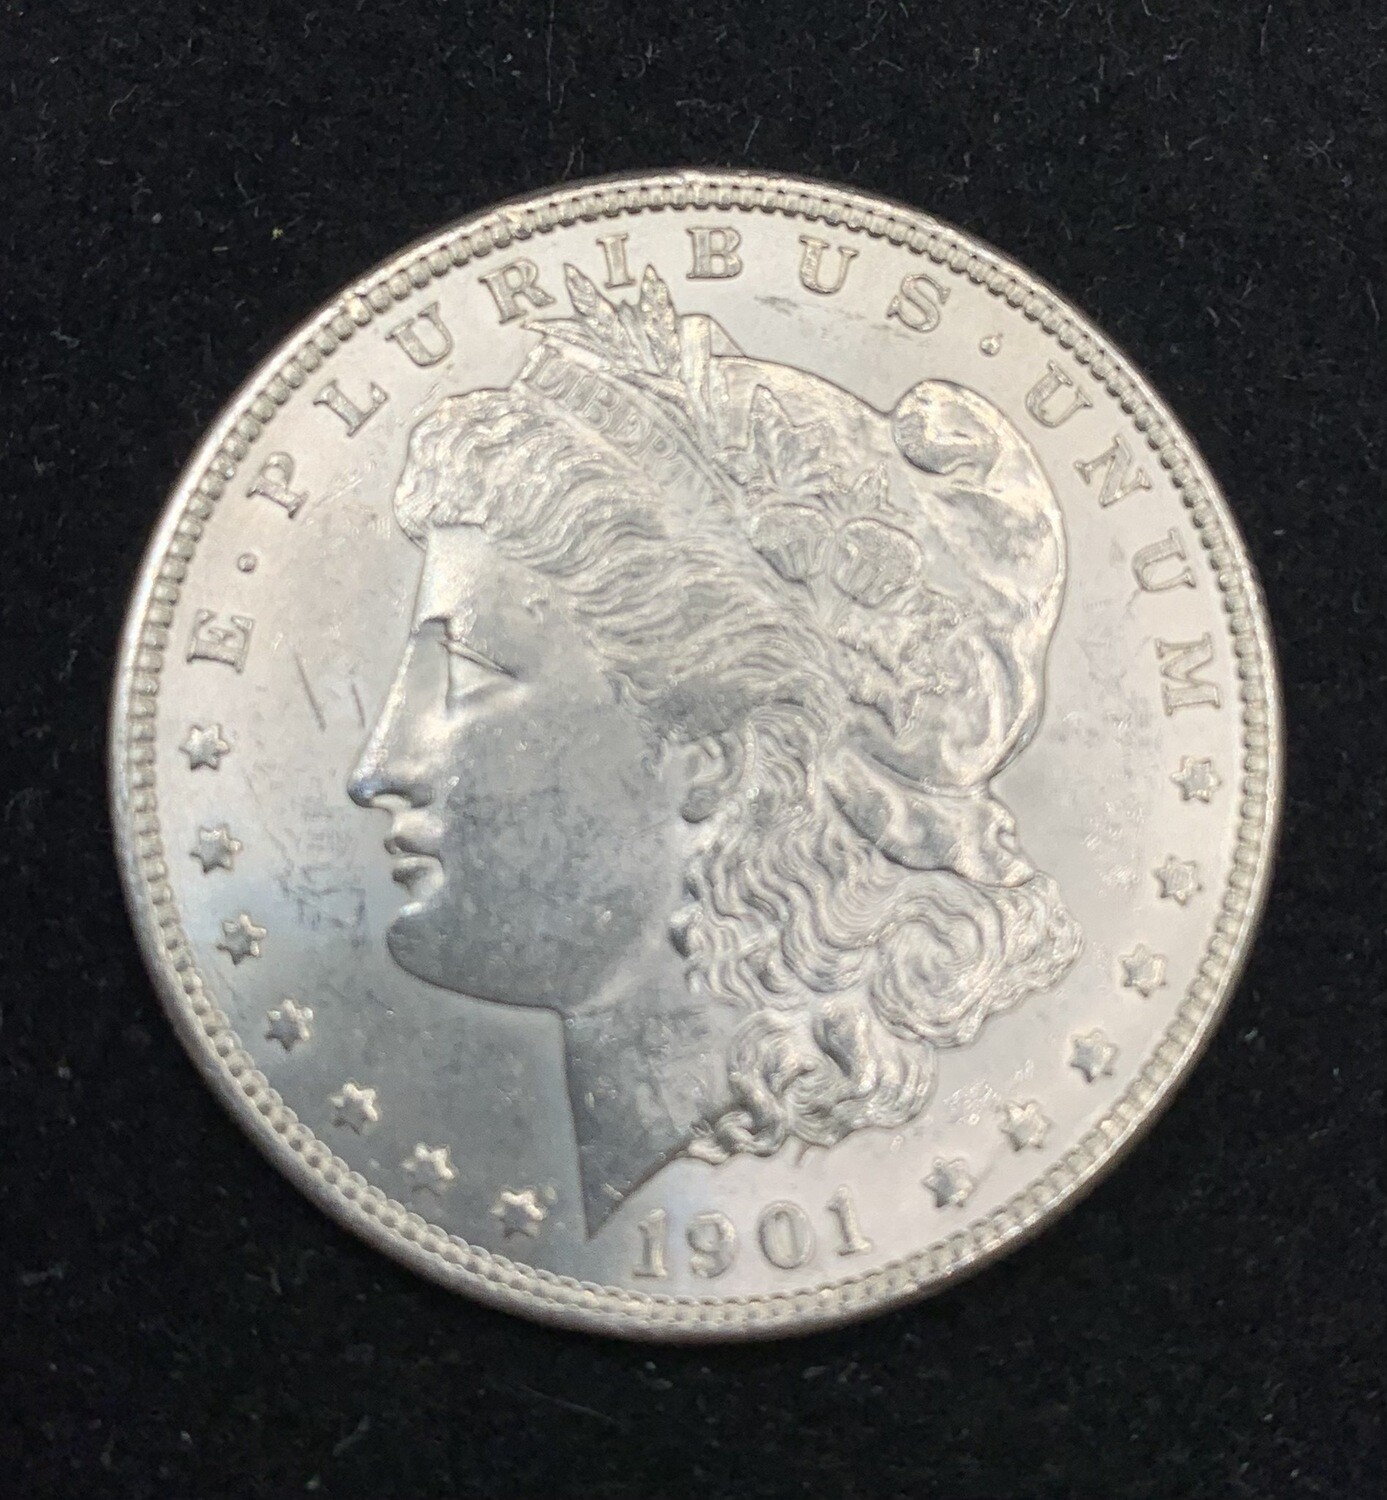 1901 Morgan Silver Dollar - New Orleans Mint